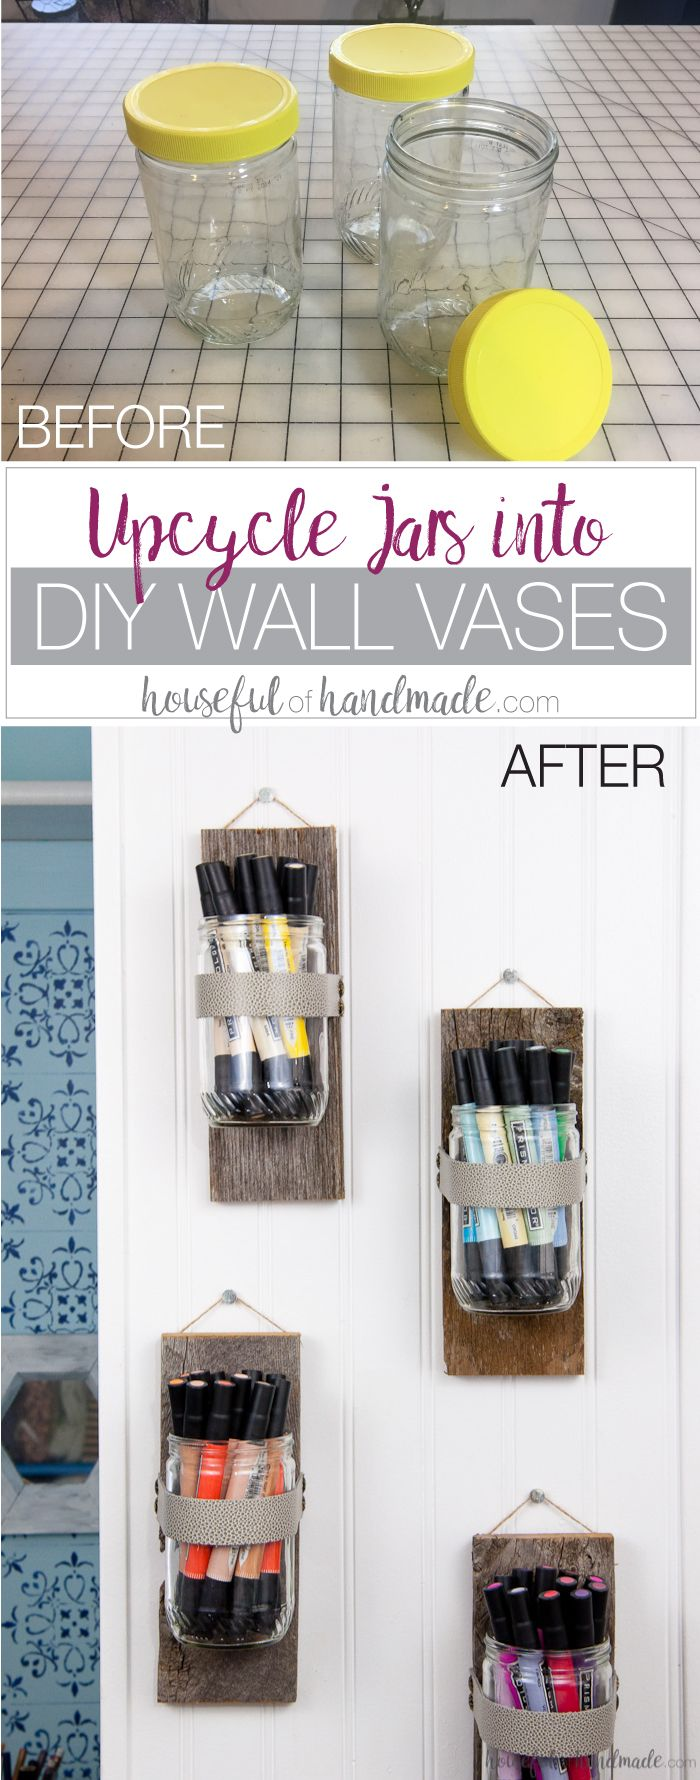 Upcycle old peanut butter jars into DIY wall vases for the perfect farmhouse decor. Use your wall vases to display art supplies, flowers or herbs. Tutorial from Housefulofhandmade.com | Farmhouse Wall Decor | Rustic Wall Vase | 10 minute Crafts | Reclaimed Wood | Upcycle Ideas | Farmhouse Decor Tutorial | Craft Supply Organization Ideas